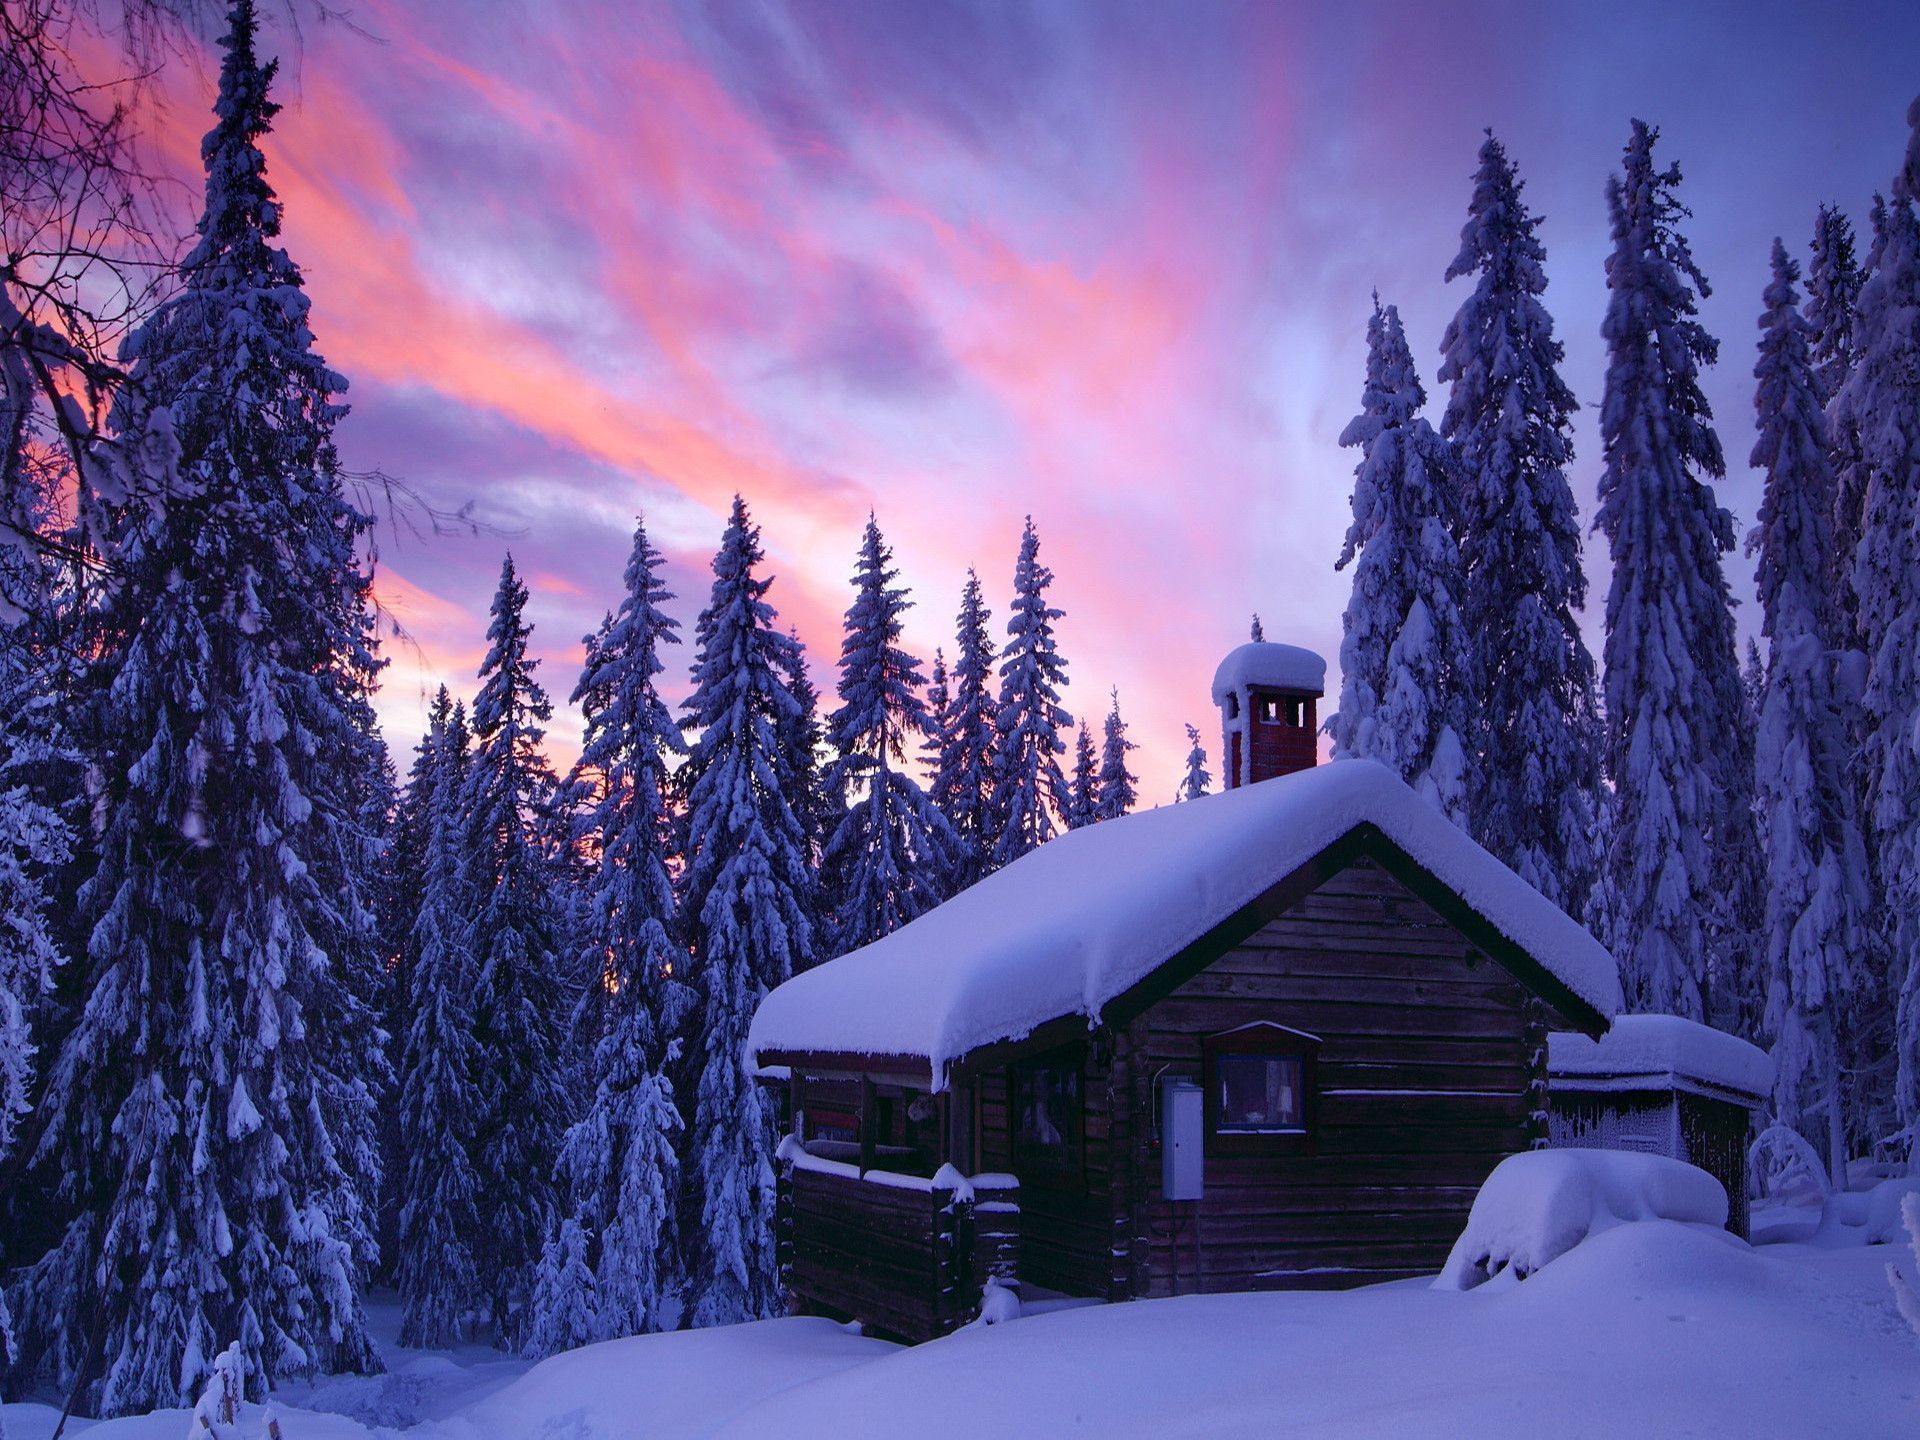 undefined Winter Cabin Wallpapers 46 Wallpapers Adorable 1920x1440